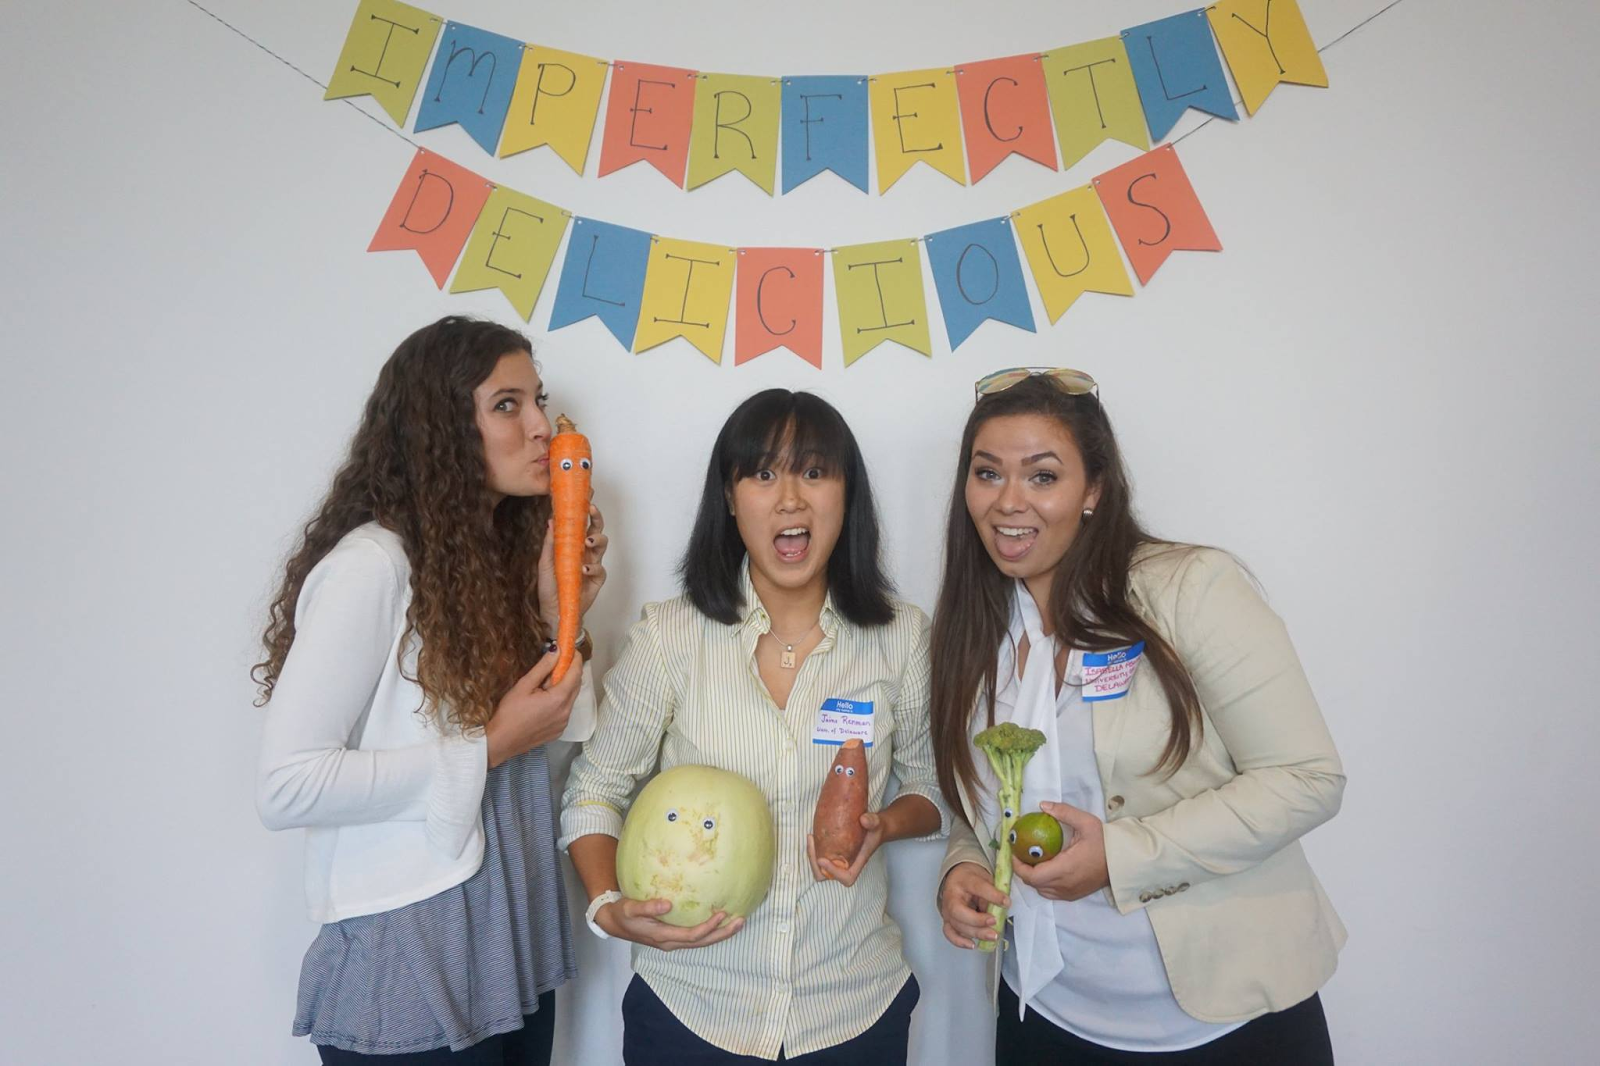 E-board members Macy Oteri, Jaime Renman, and Izzy Aswad pose with produce that is rejected due to its imperfections at the NFRD conference.